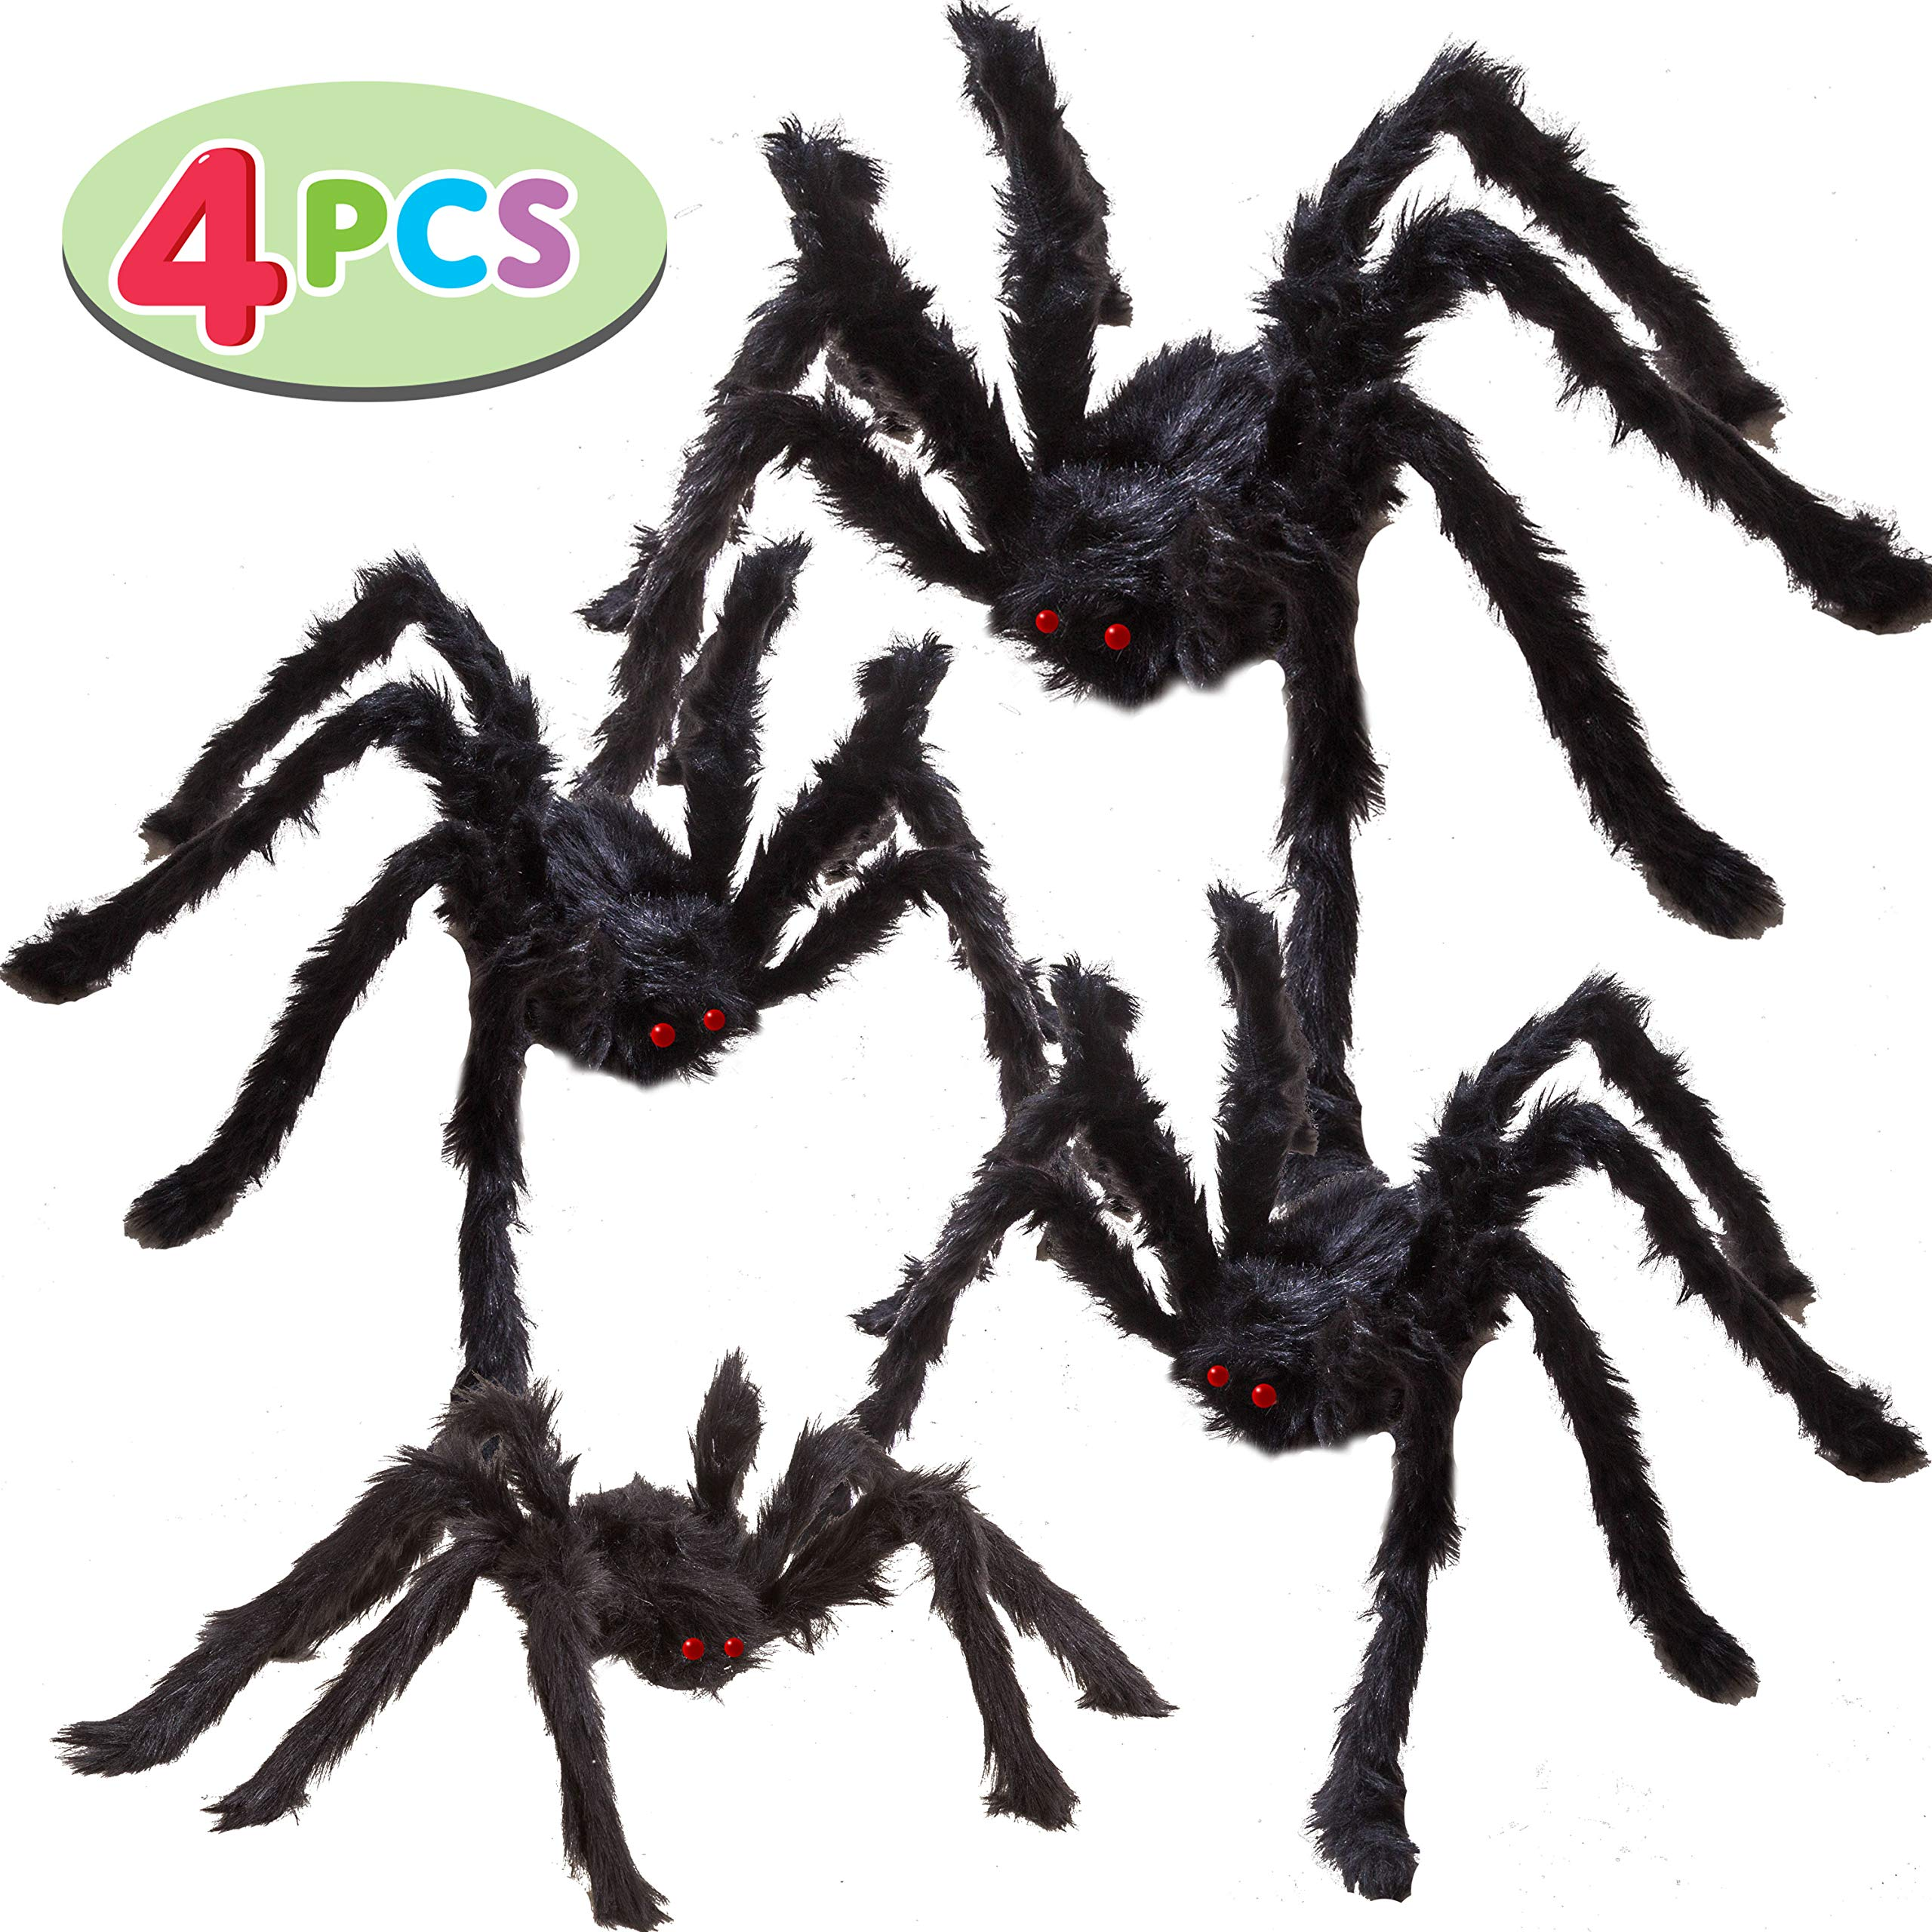 Four Halloween Realistic Hairy Spiders Set, Valuable Halloween Props, Halloween Spider Set for Indoor and Outside Decorations (One 47.25'', Two 35.5'', and One 29.5'') by JOYIN